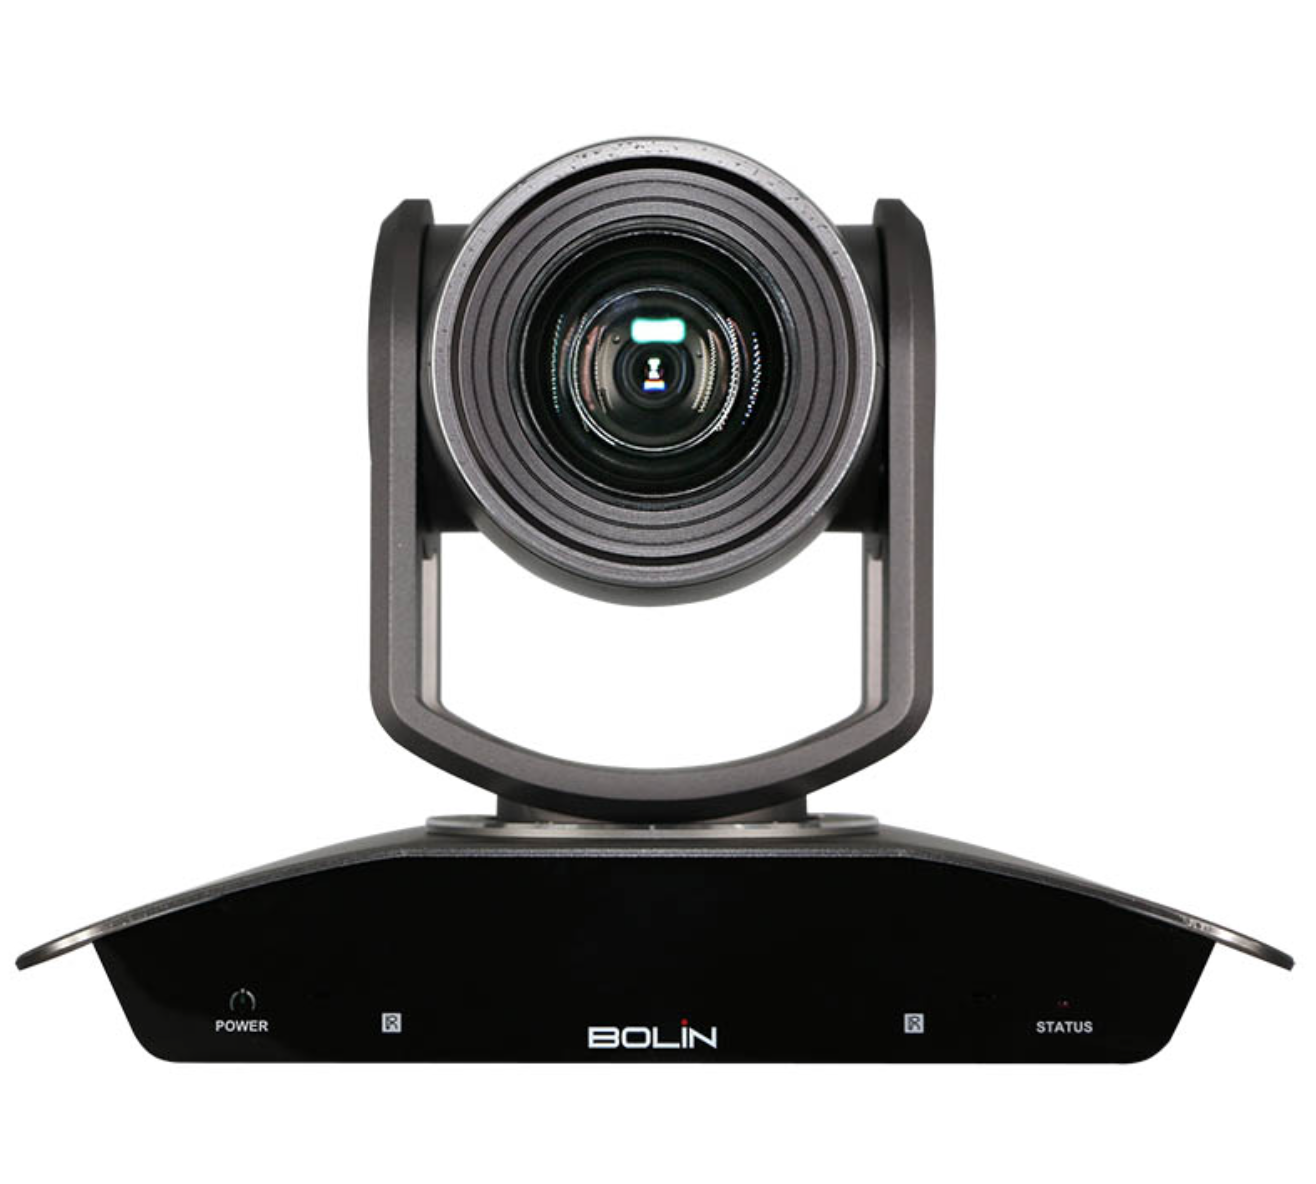 BOLIN Tech VCC-8HD20S-SM Camera купить заказать